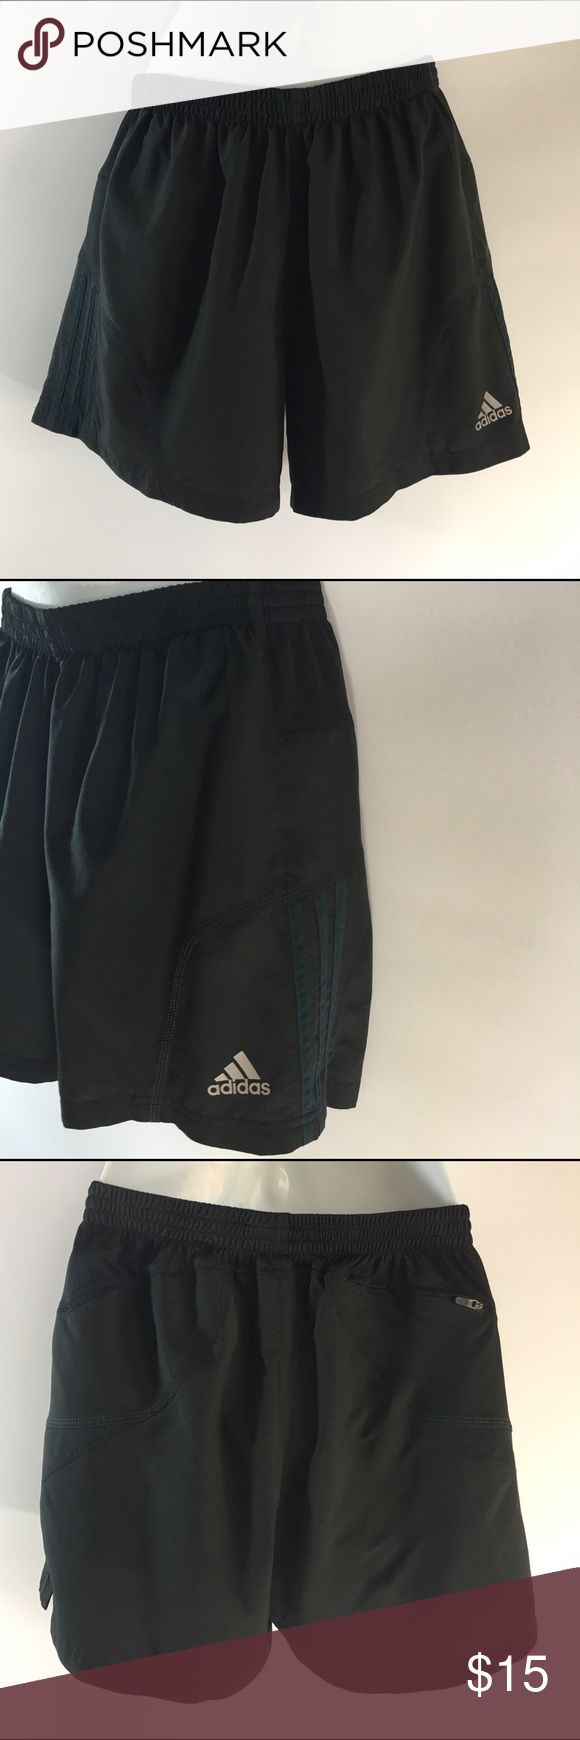 "Adidas response climalite 5"" shorts black lined Adidas response climalite shorts.  Size medium. 100% polyester. In very good preowned condition black with dark teal stripes at sides. Back zippered side pocket at top right lined inside with an elastic waist and inside drawstring. Measurements are 5 inch inseam 14 inches across the waist which stretches to about 20 inches and an 11 inch front rise. adidas Shorts Athletic"